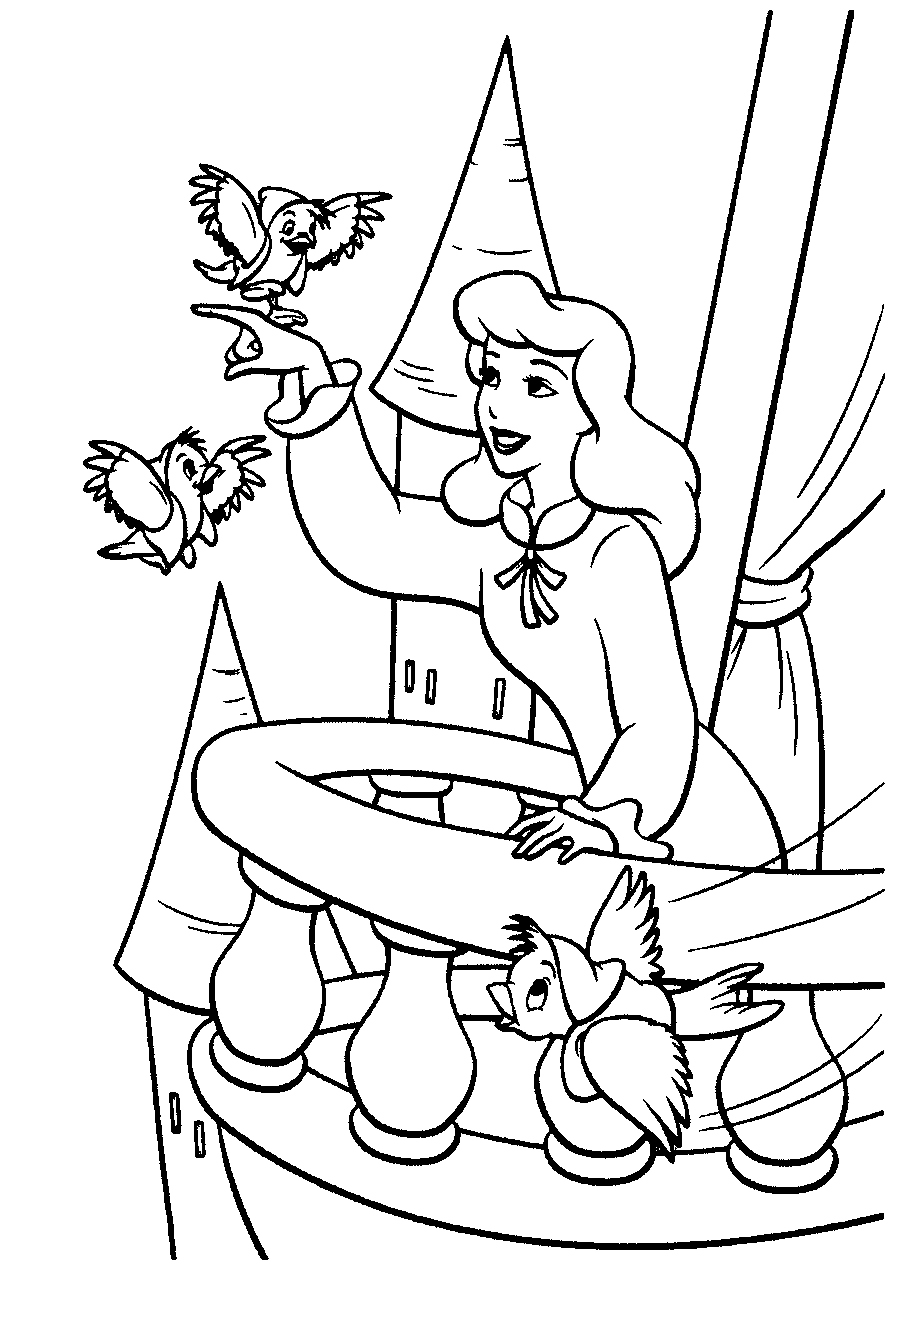 Cinderella Coloring Pages To Print Coloring Pages Coloring